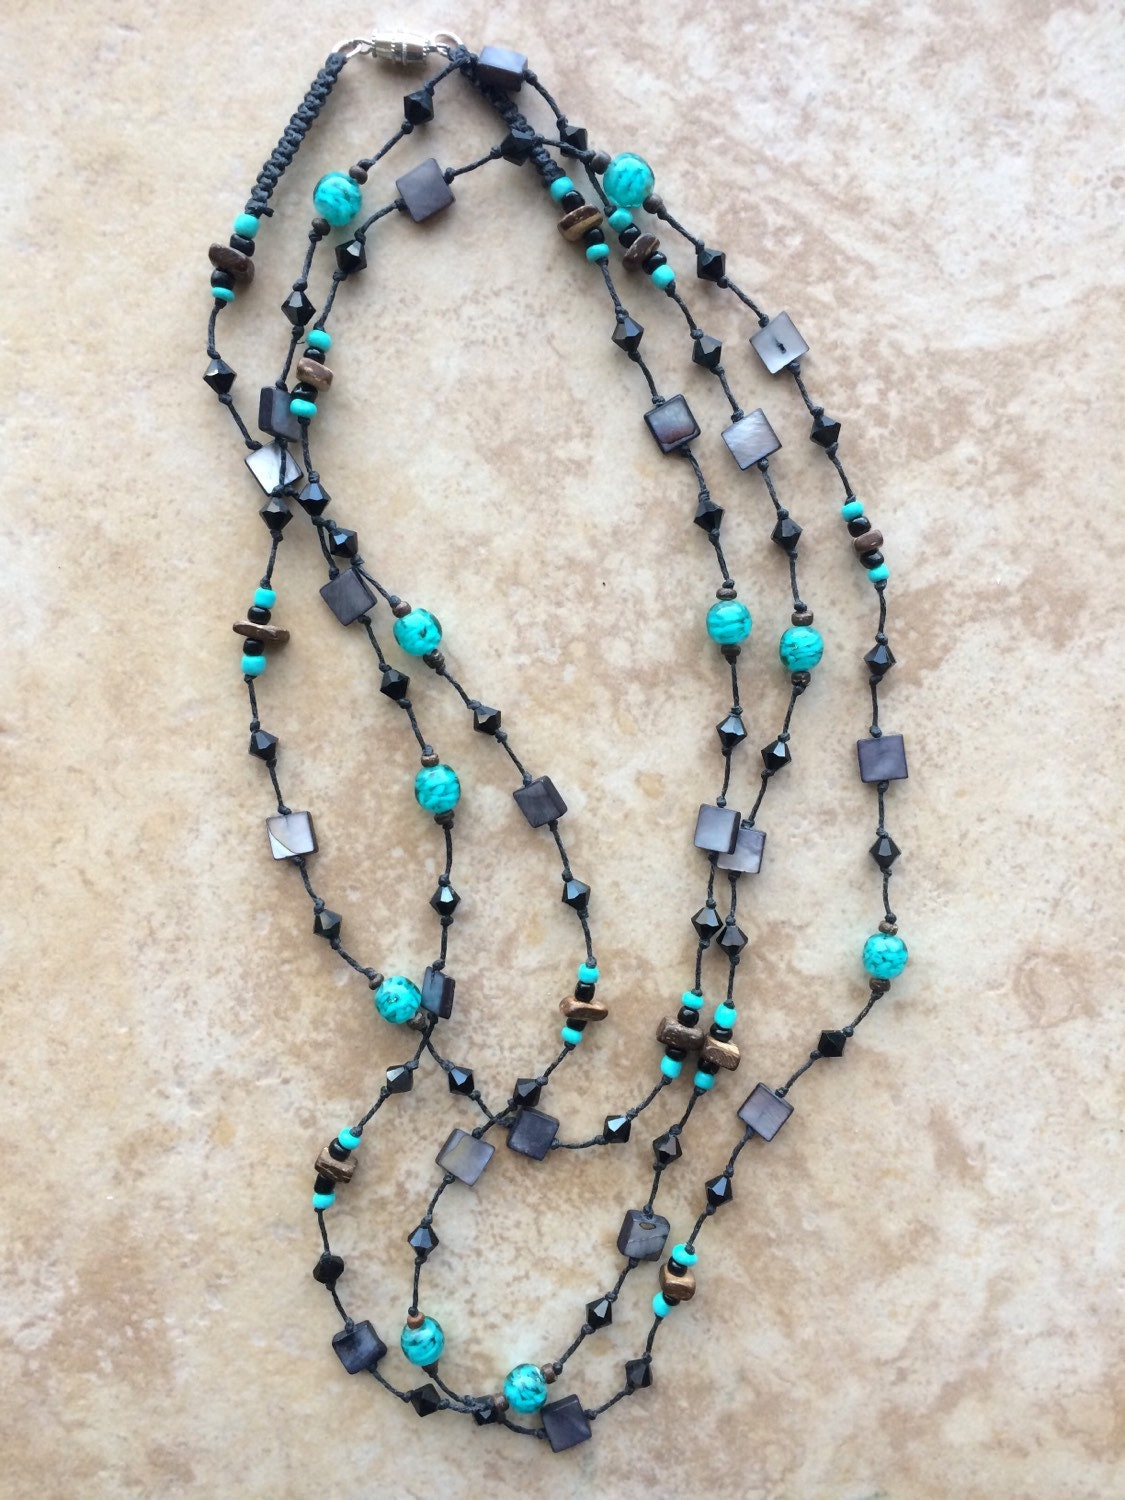 black stone necklace knotted necklace turquoise gray. Black Bedroom Furniture Sets. Home Design Ideas